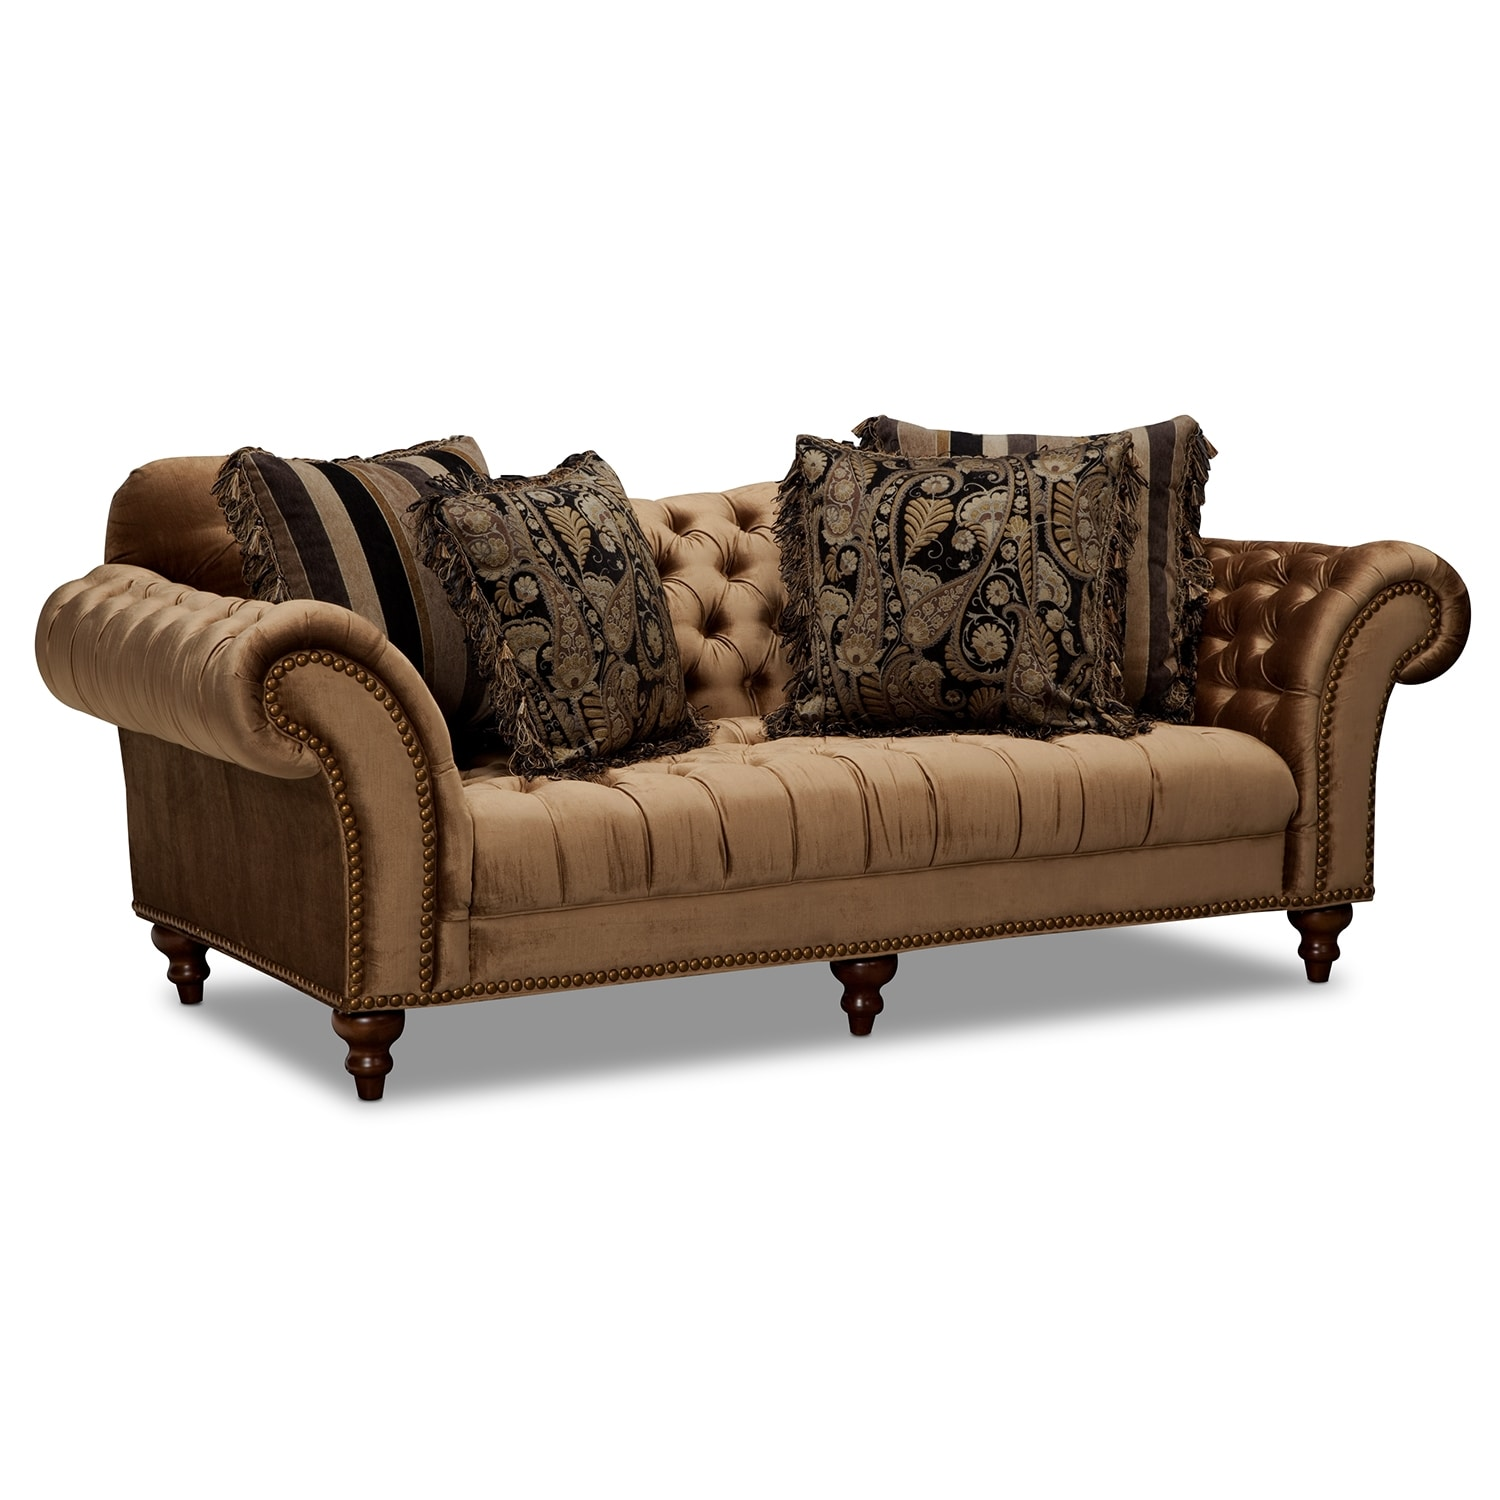 City Furniture Sofas: Brittney Sofa And Chaise Set - Bronze